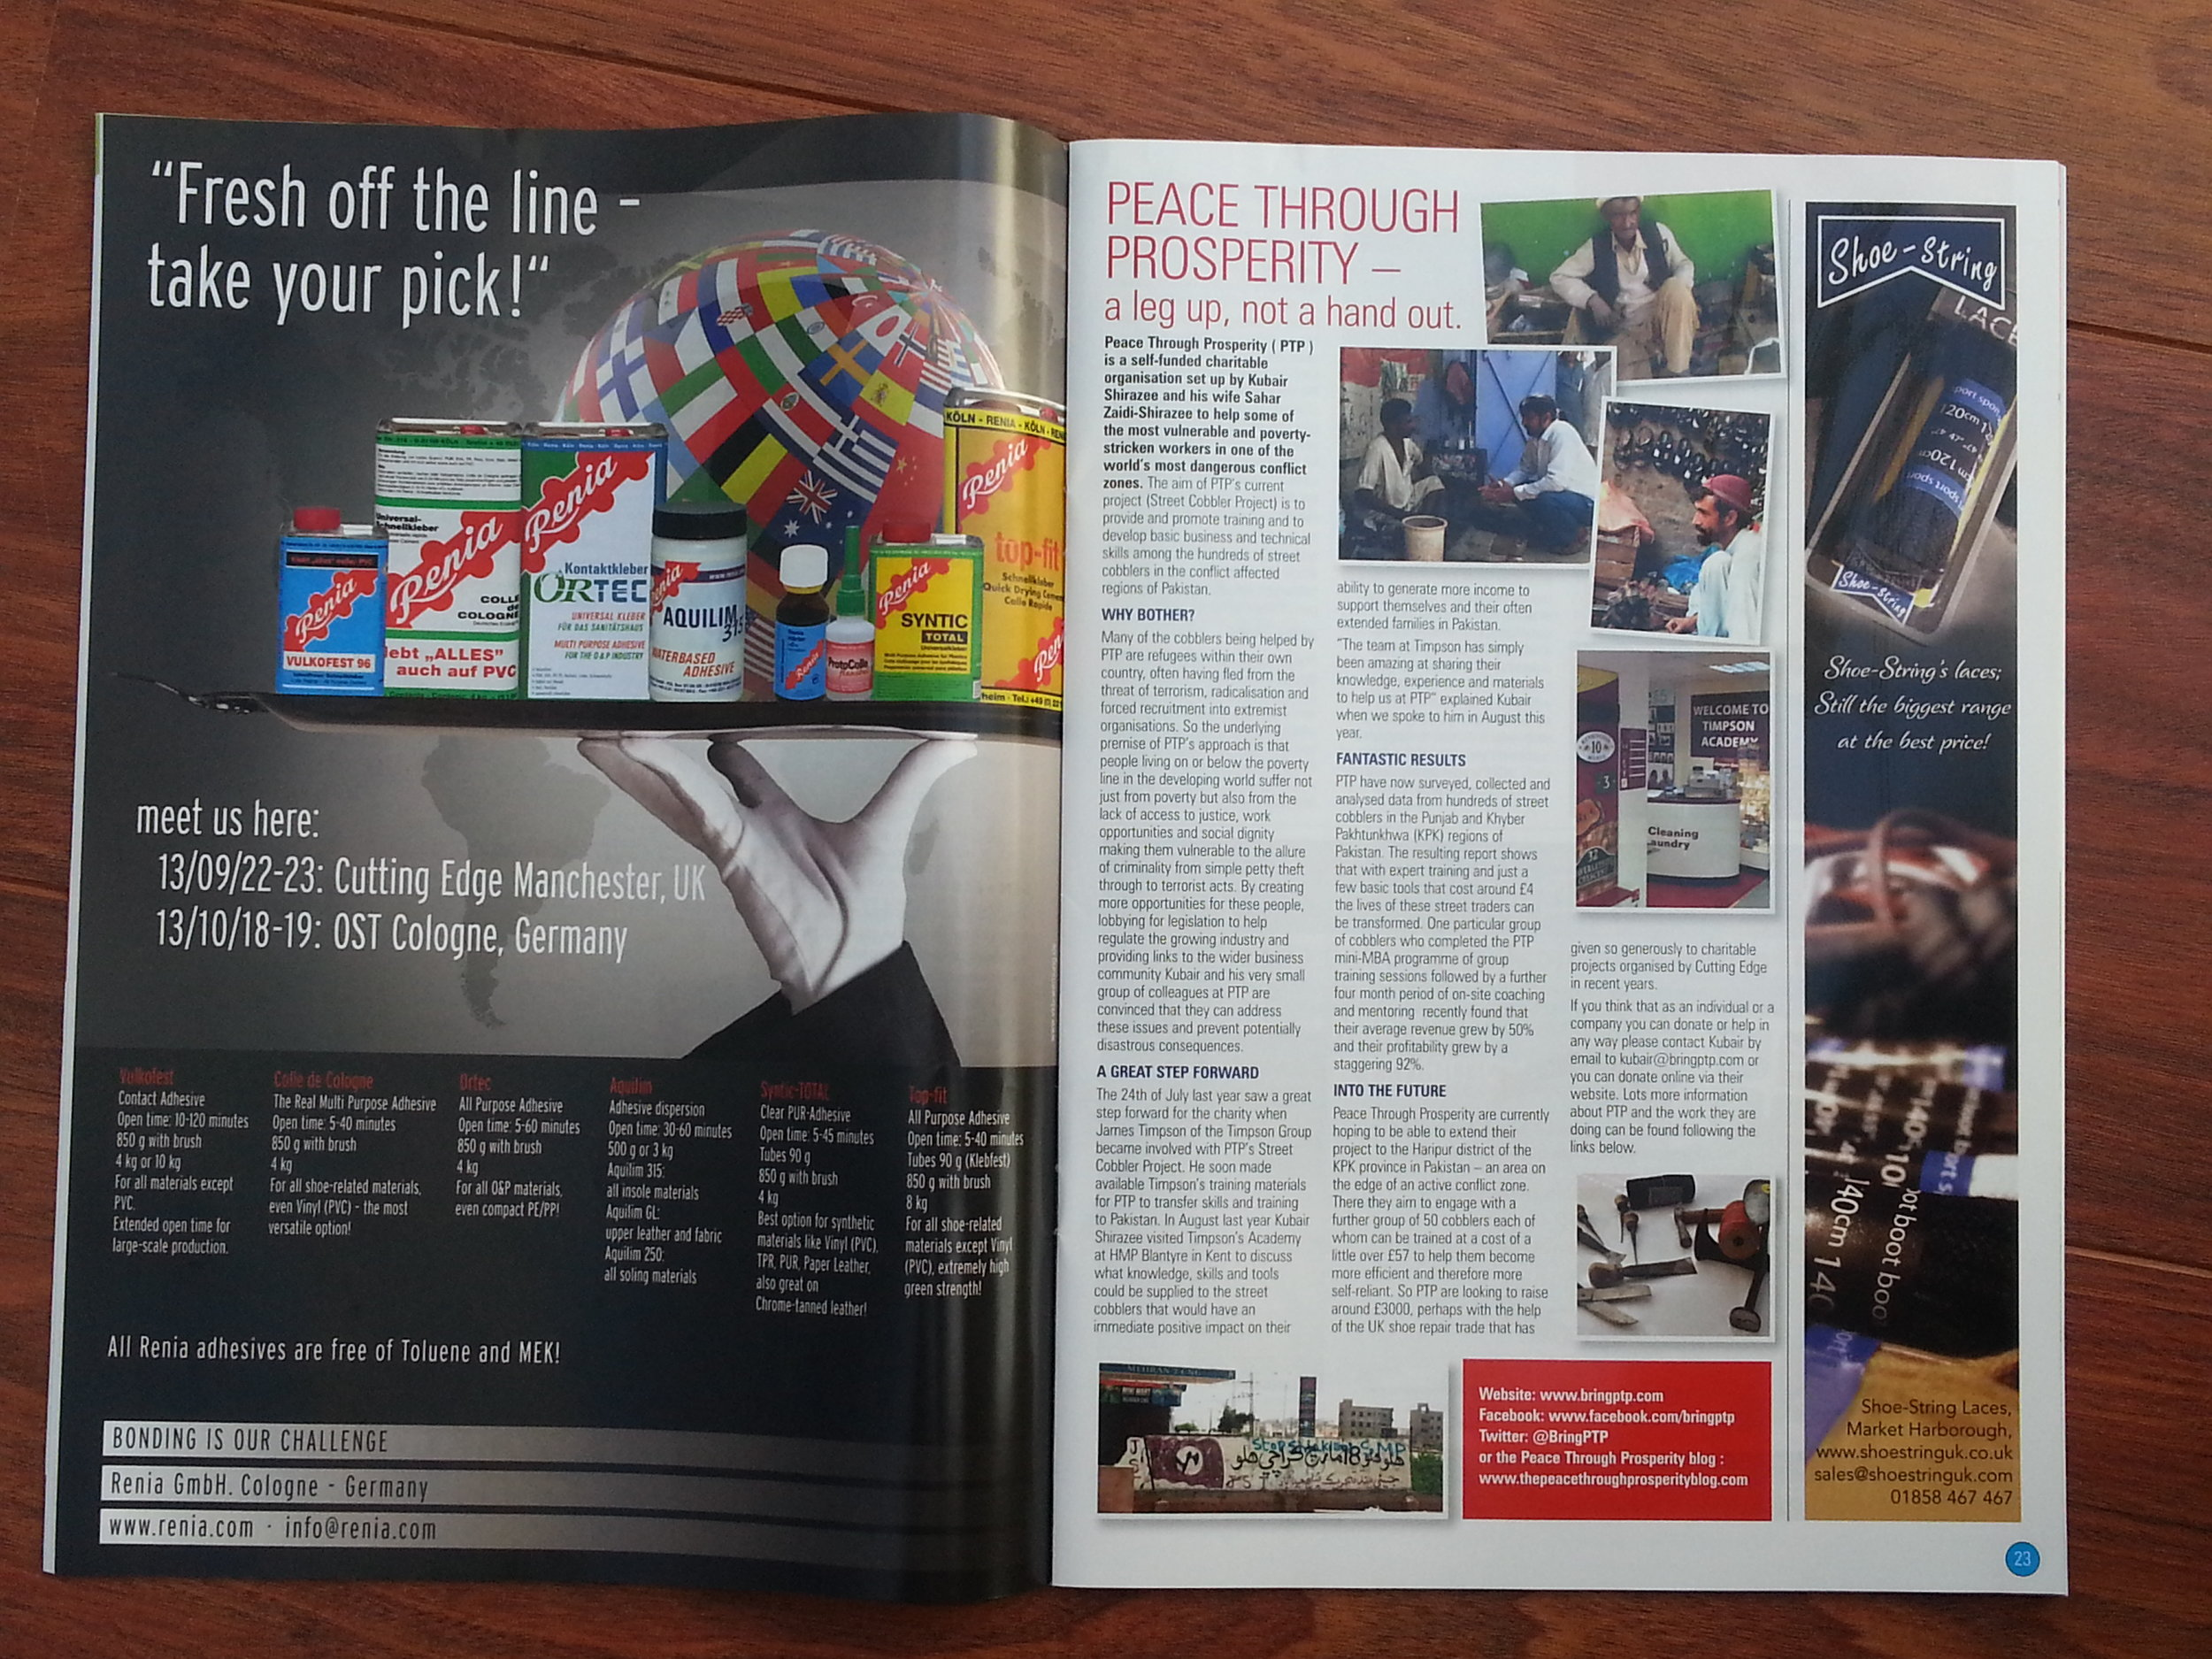 Cutting Edge trade magazine for UK Shoe Repairer - Featuring Peace Through Prosperity